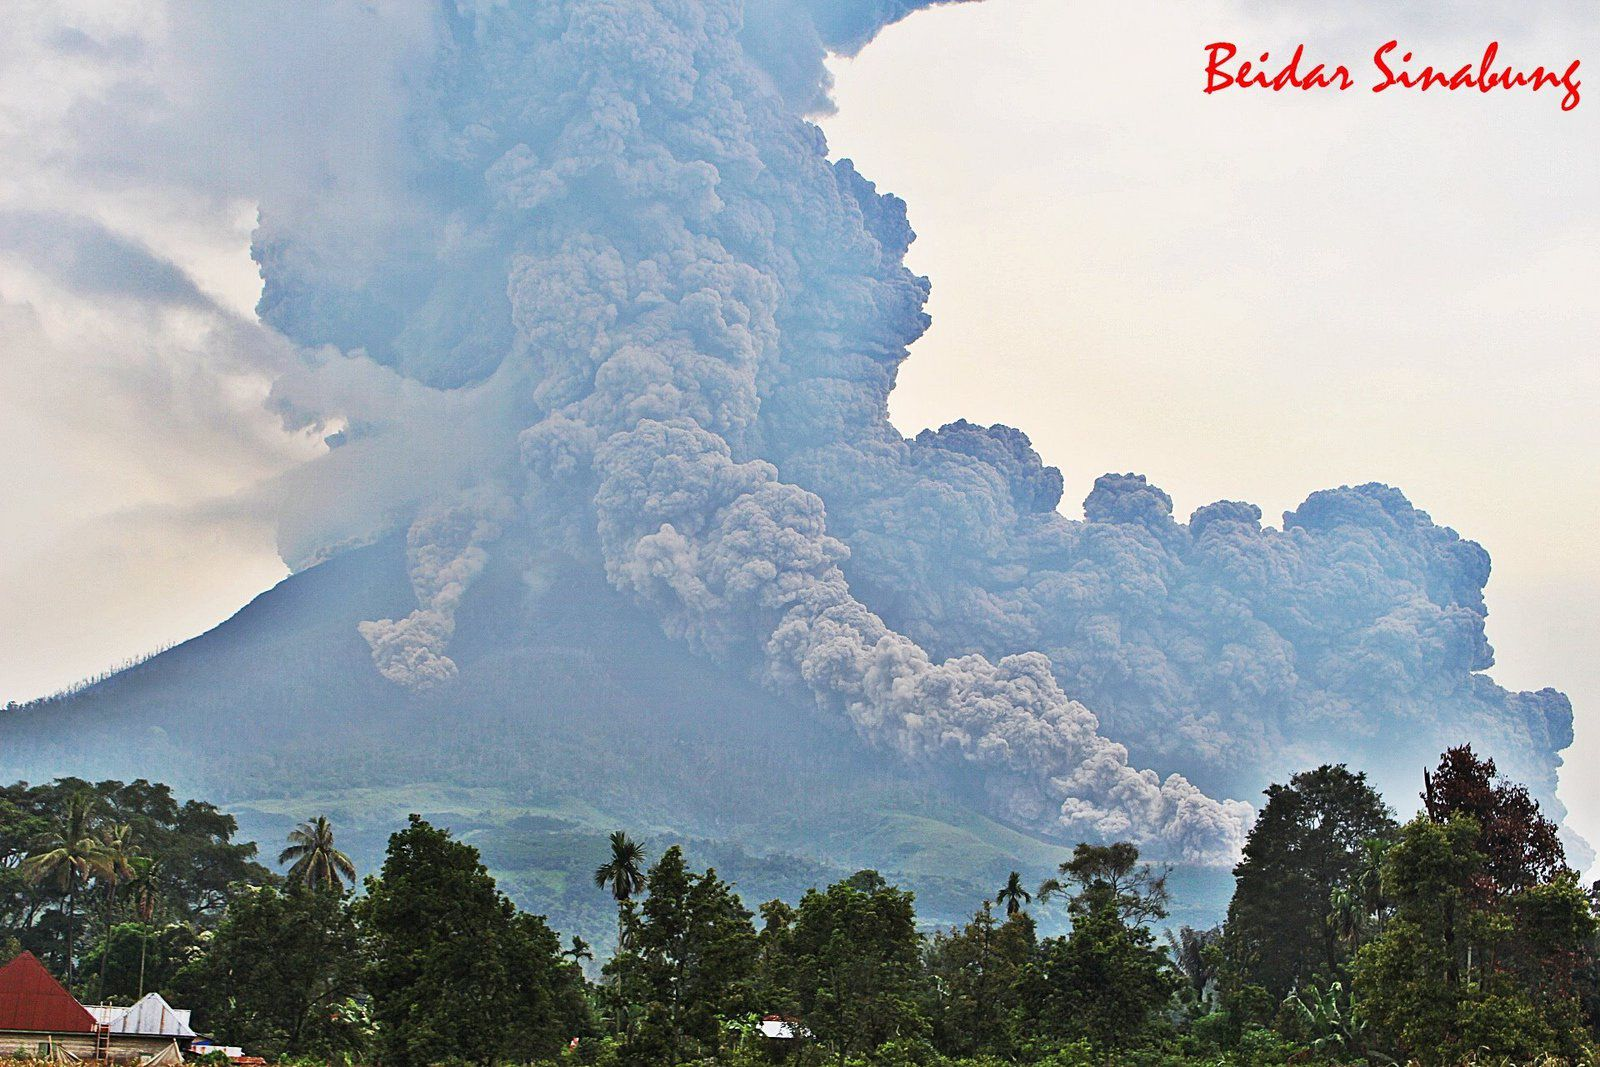 Sinabung - eruption of 06.04.2018 / 16h07 - development of three pyroclastic flows in different directions - photo F.Surbakti / via Beidar sinabung